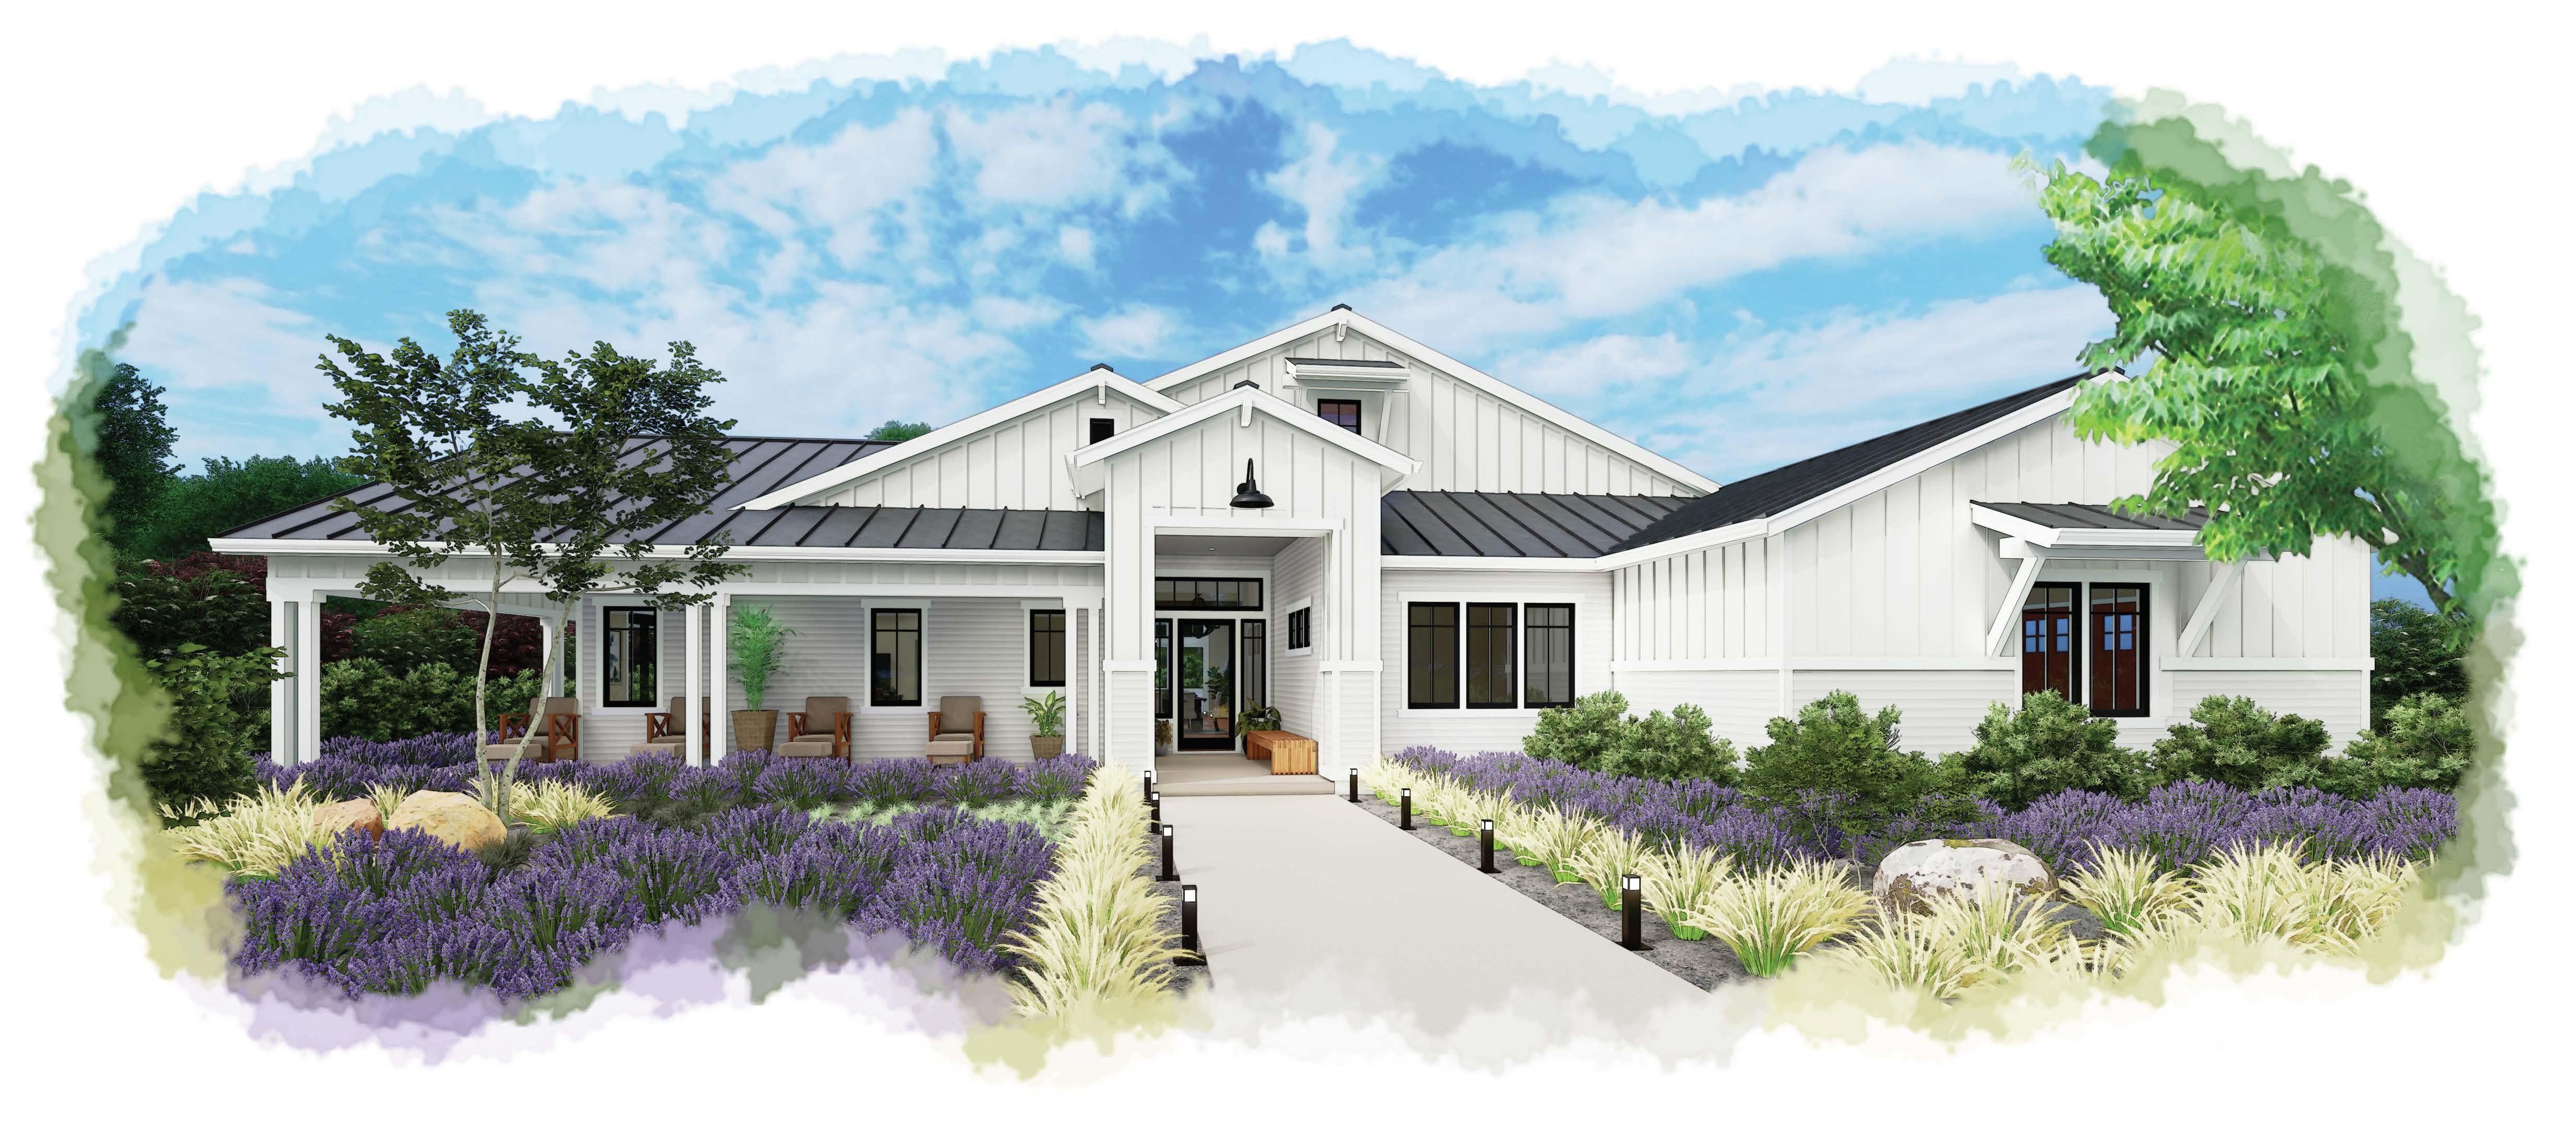 'Fountaingrove' by Christopherson Builders in Santa Rosa